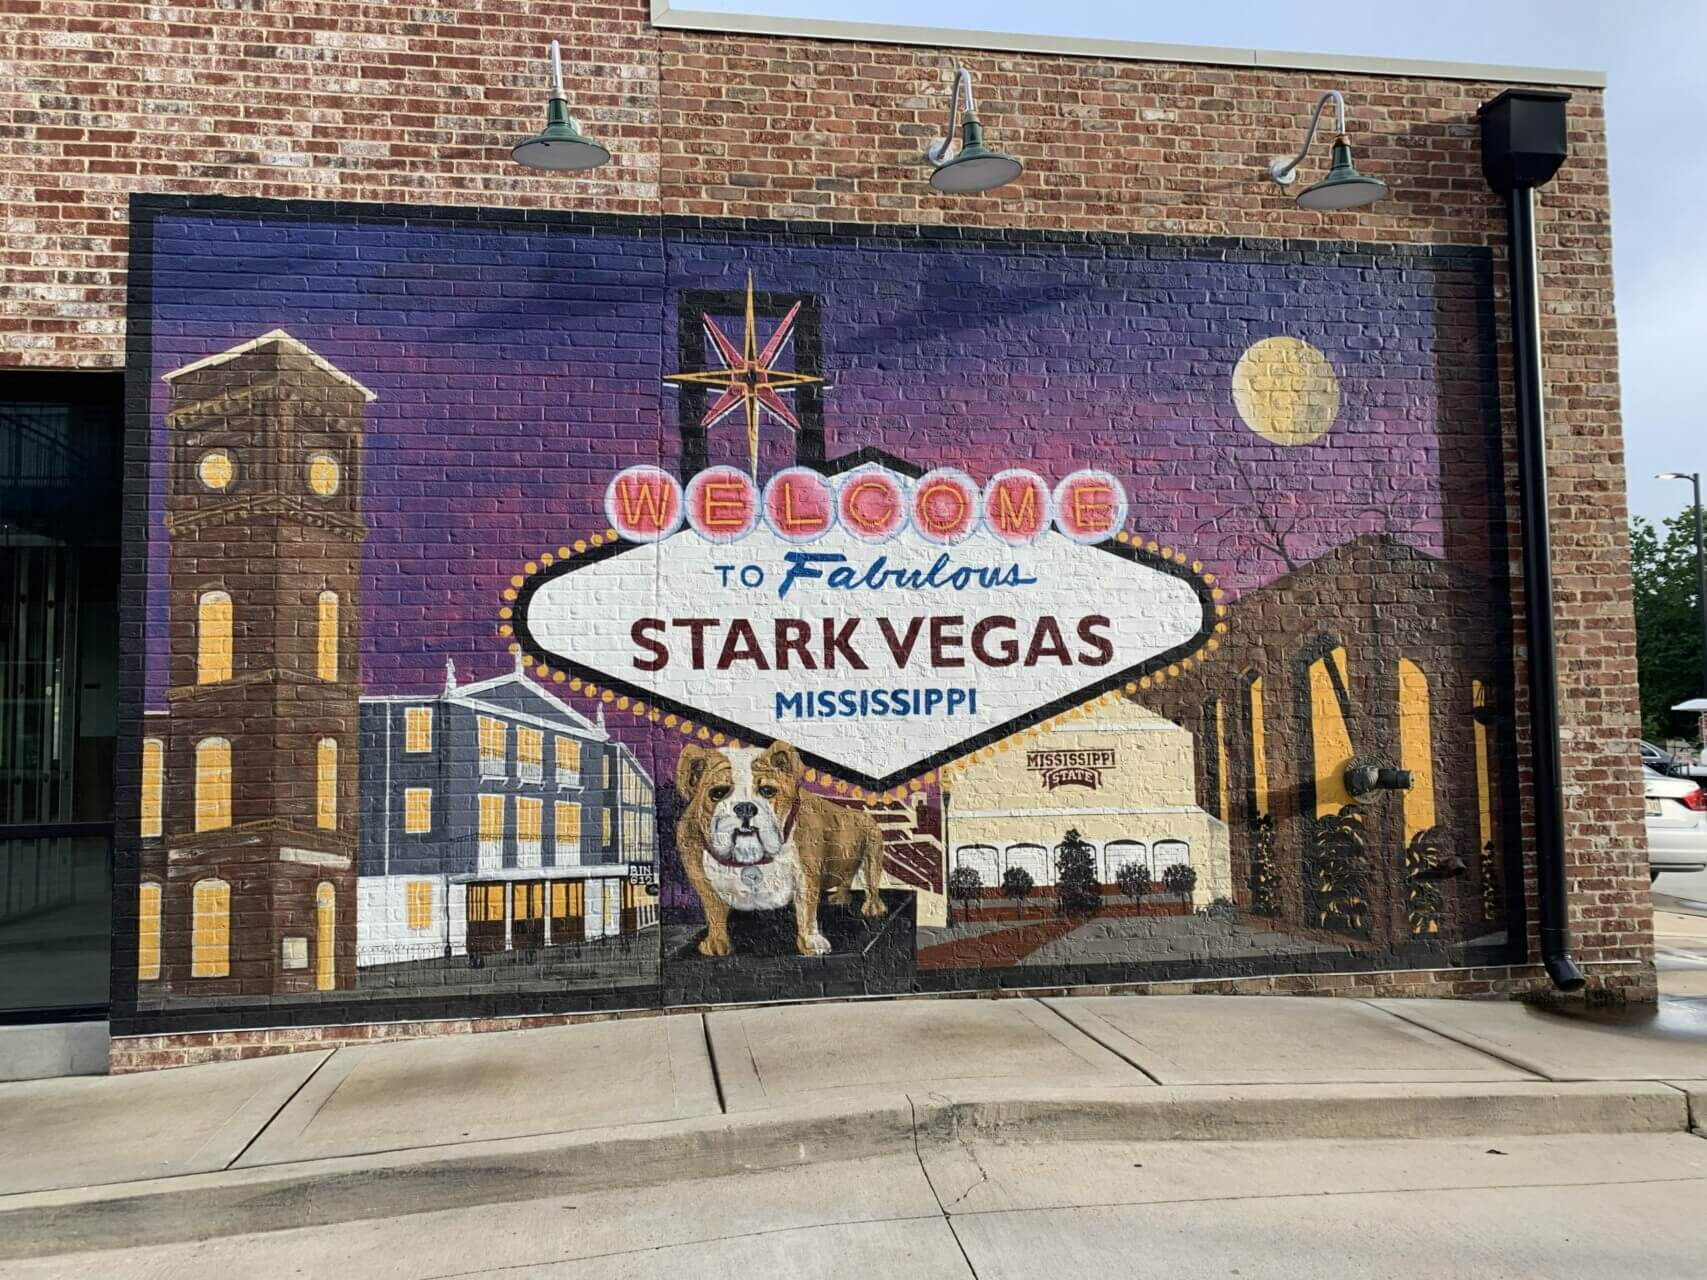 Starkville mural featuring some of the community's most recognizable landmarks.